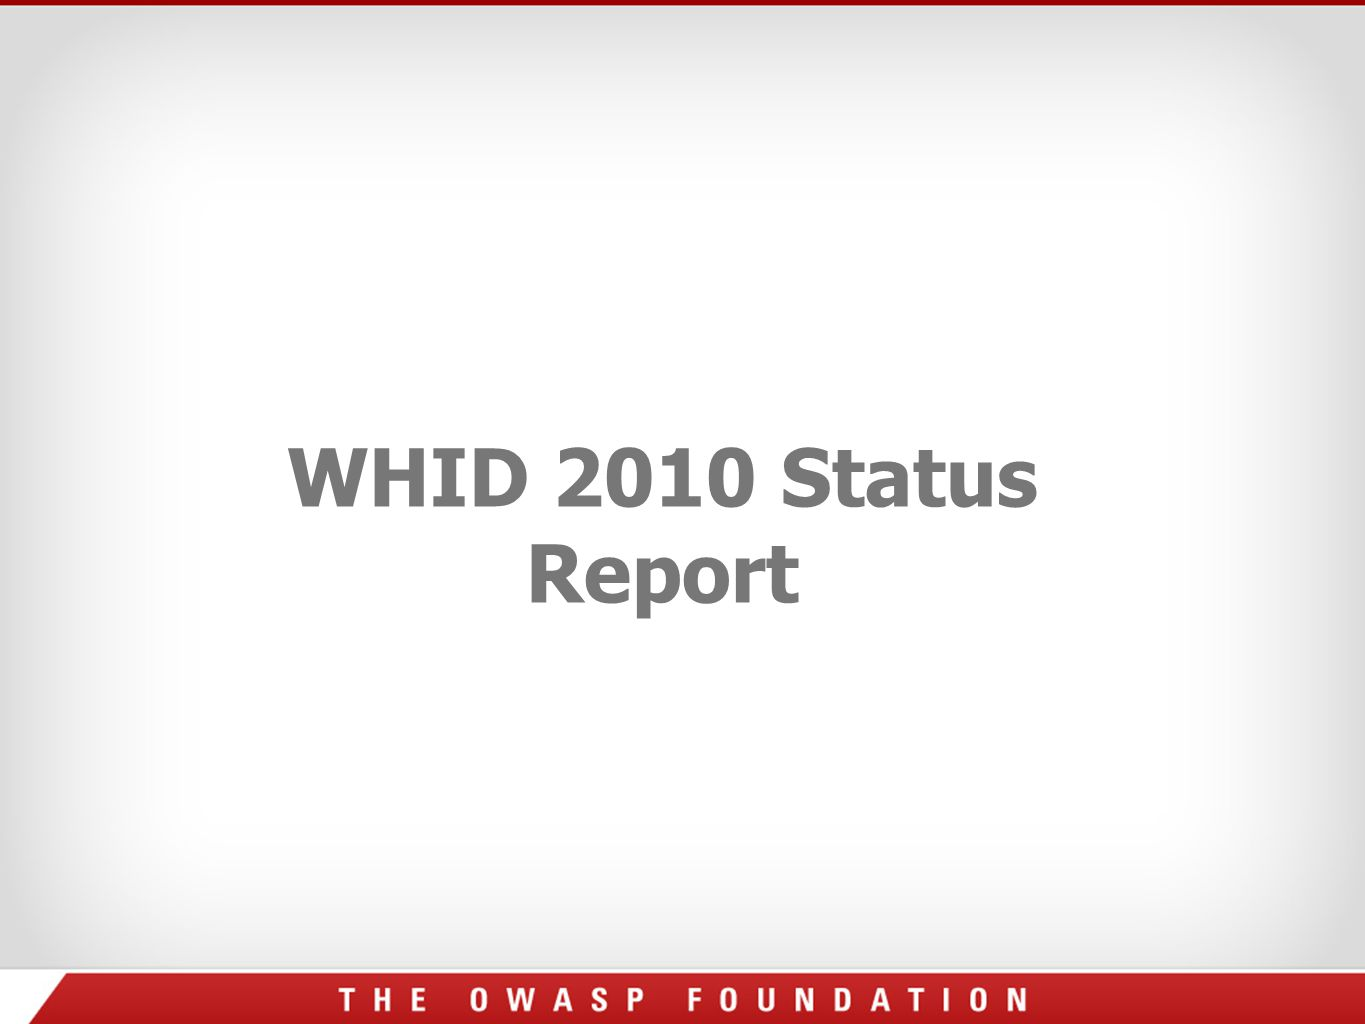 WHID 2010 Status Report